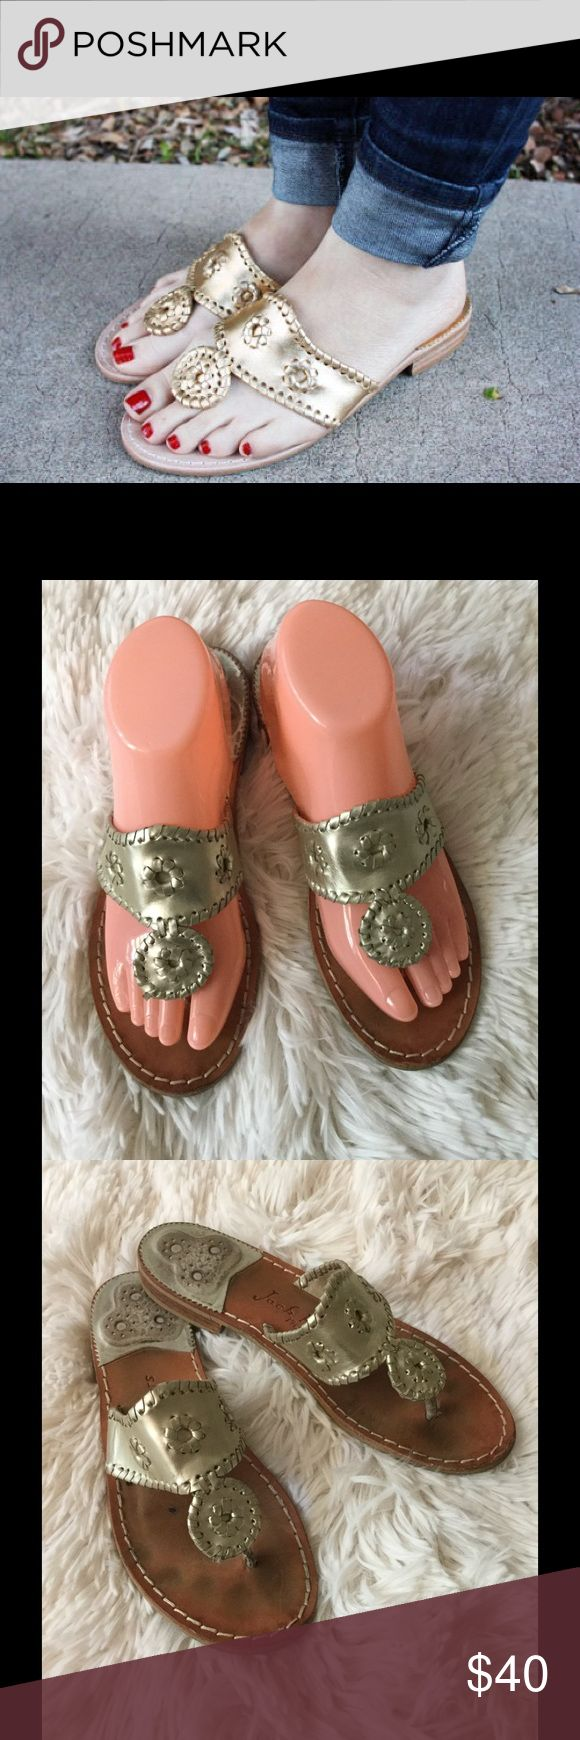 🌴🌴Jack Rogers sandals 🌴🌴 🌴Super cute sandals some wear look closer at the photo however they have a lot life do not hesitate to make an offer 🌴 Jack Rogers Shoes Sandals